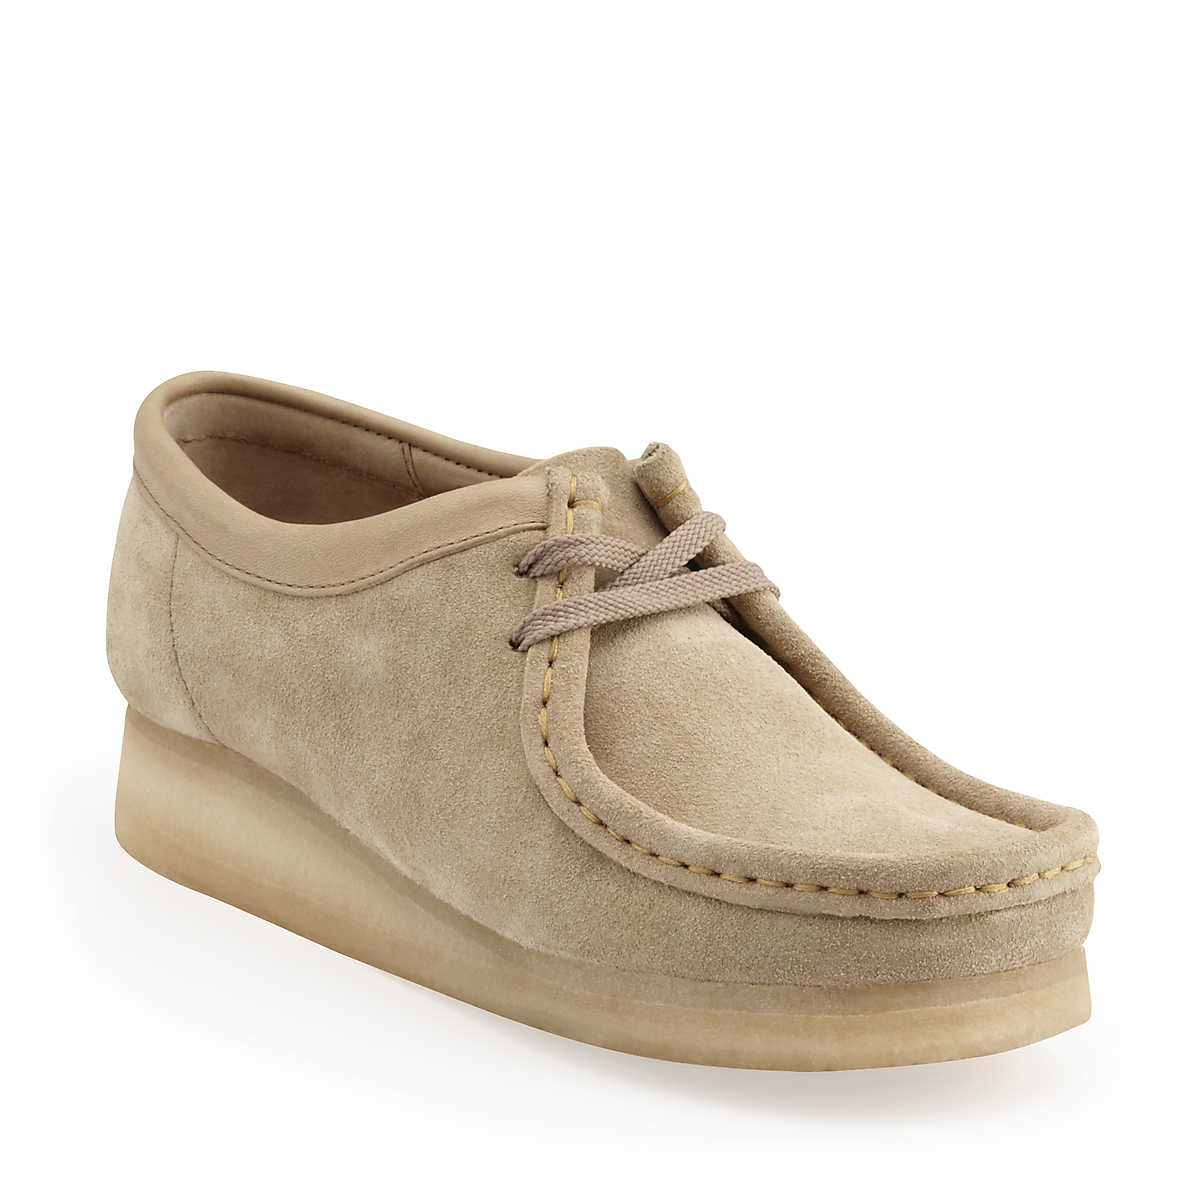 Womens Wallabees | Clarks Wallabees Womens | Wallabees Clarks Womens